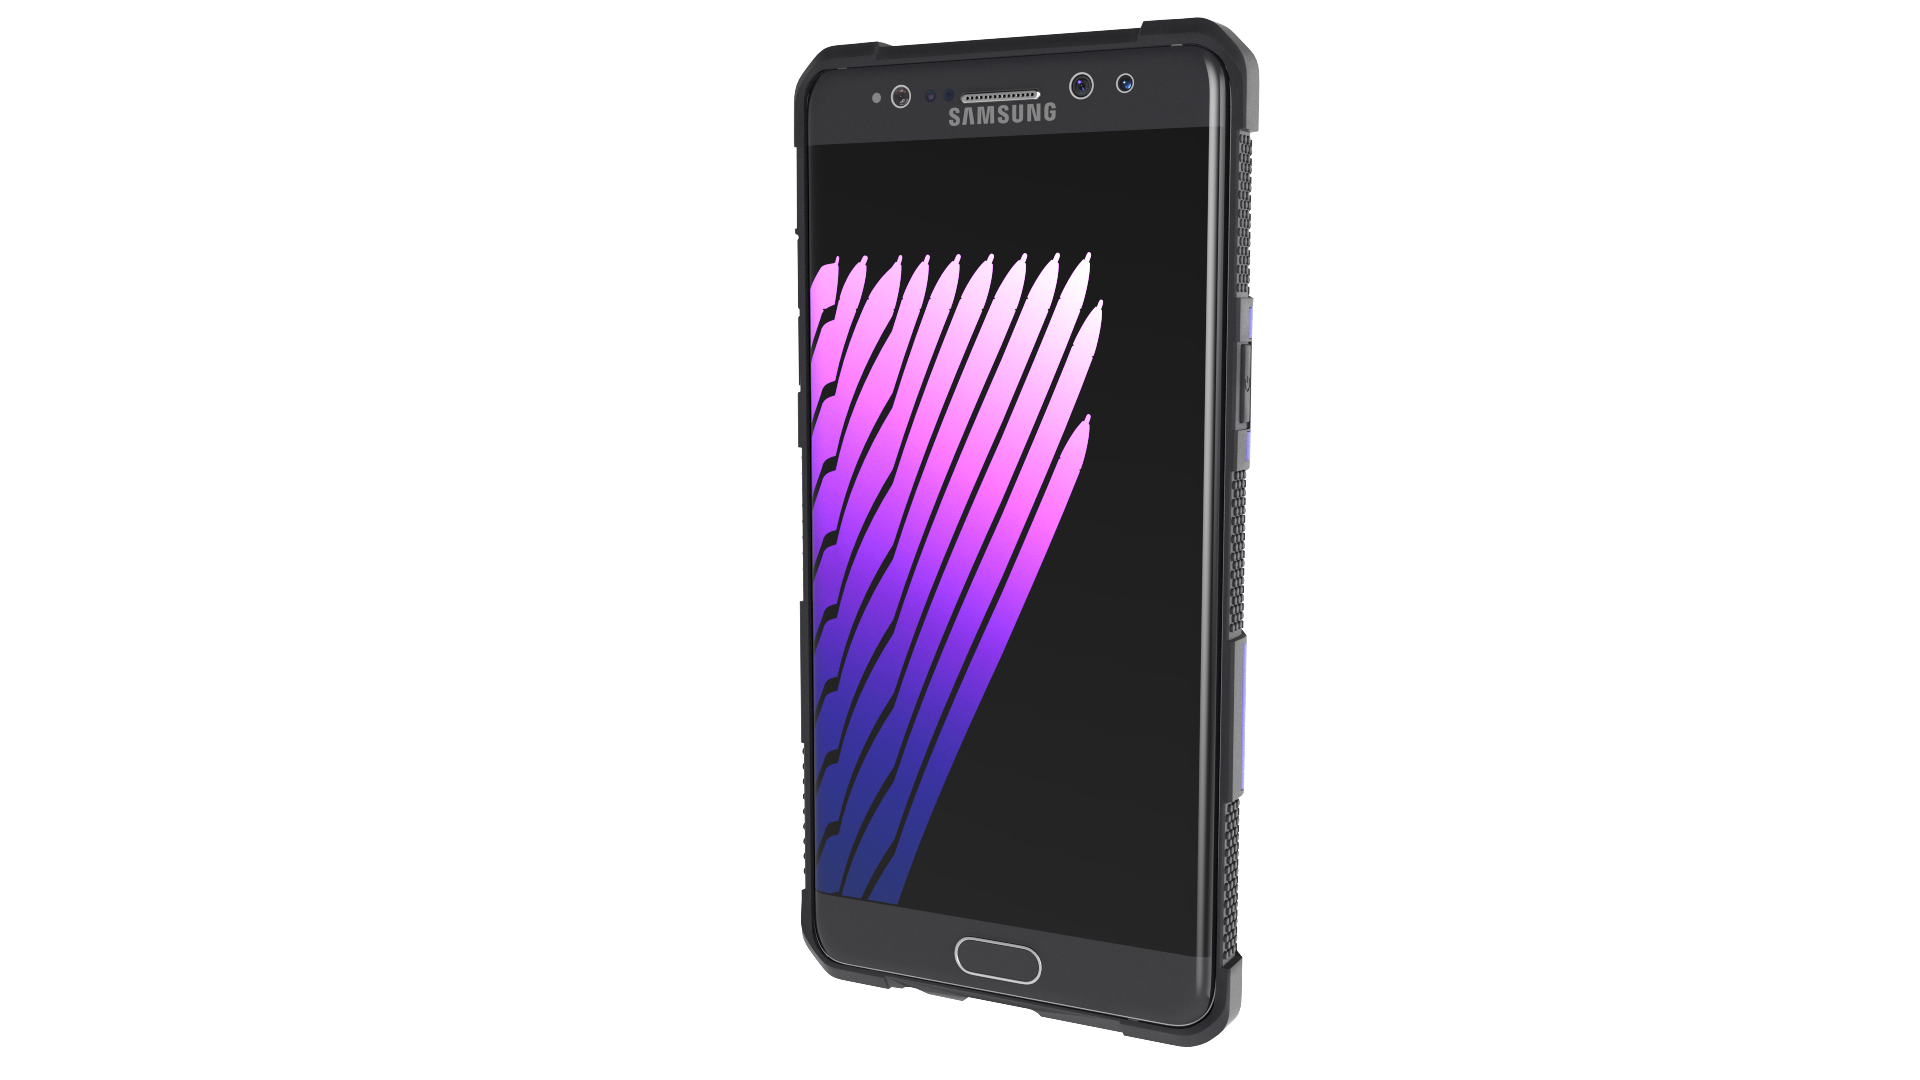 Samsung galaxy note 7 png. With phone case by